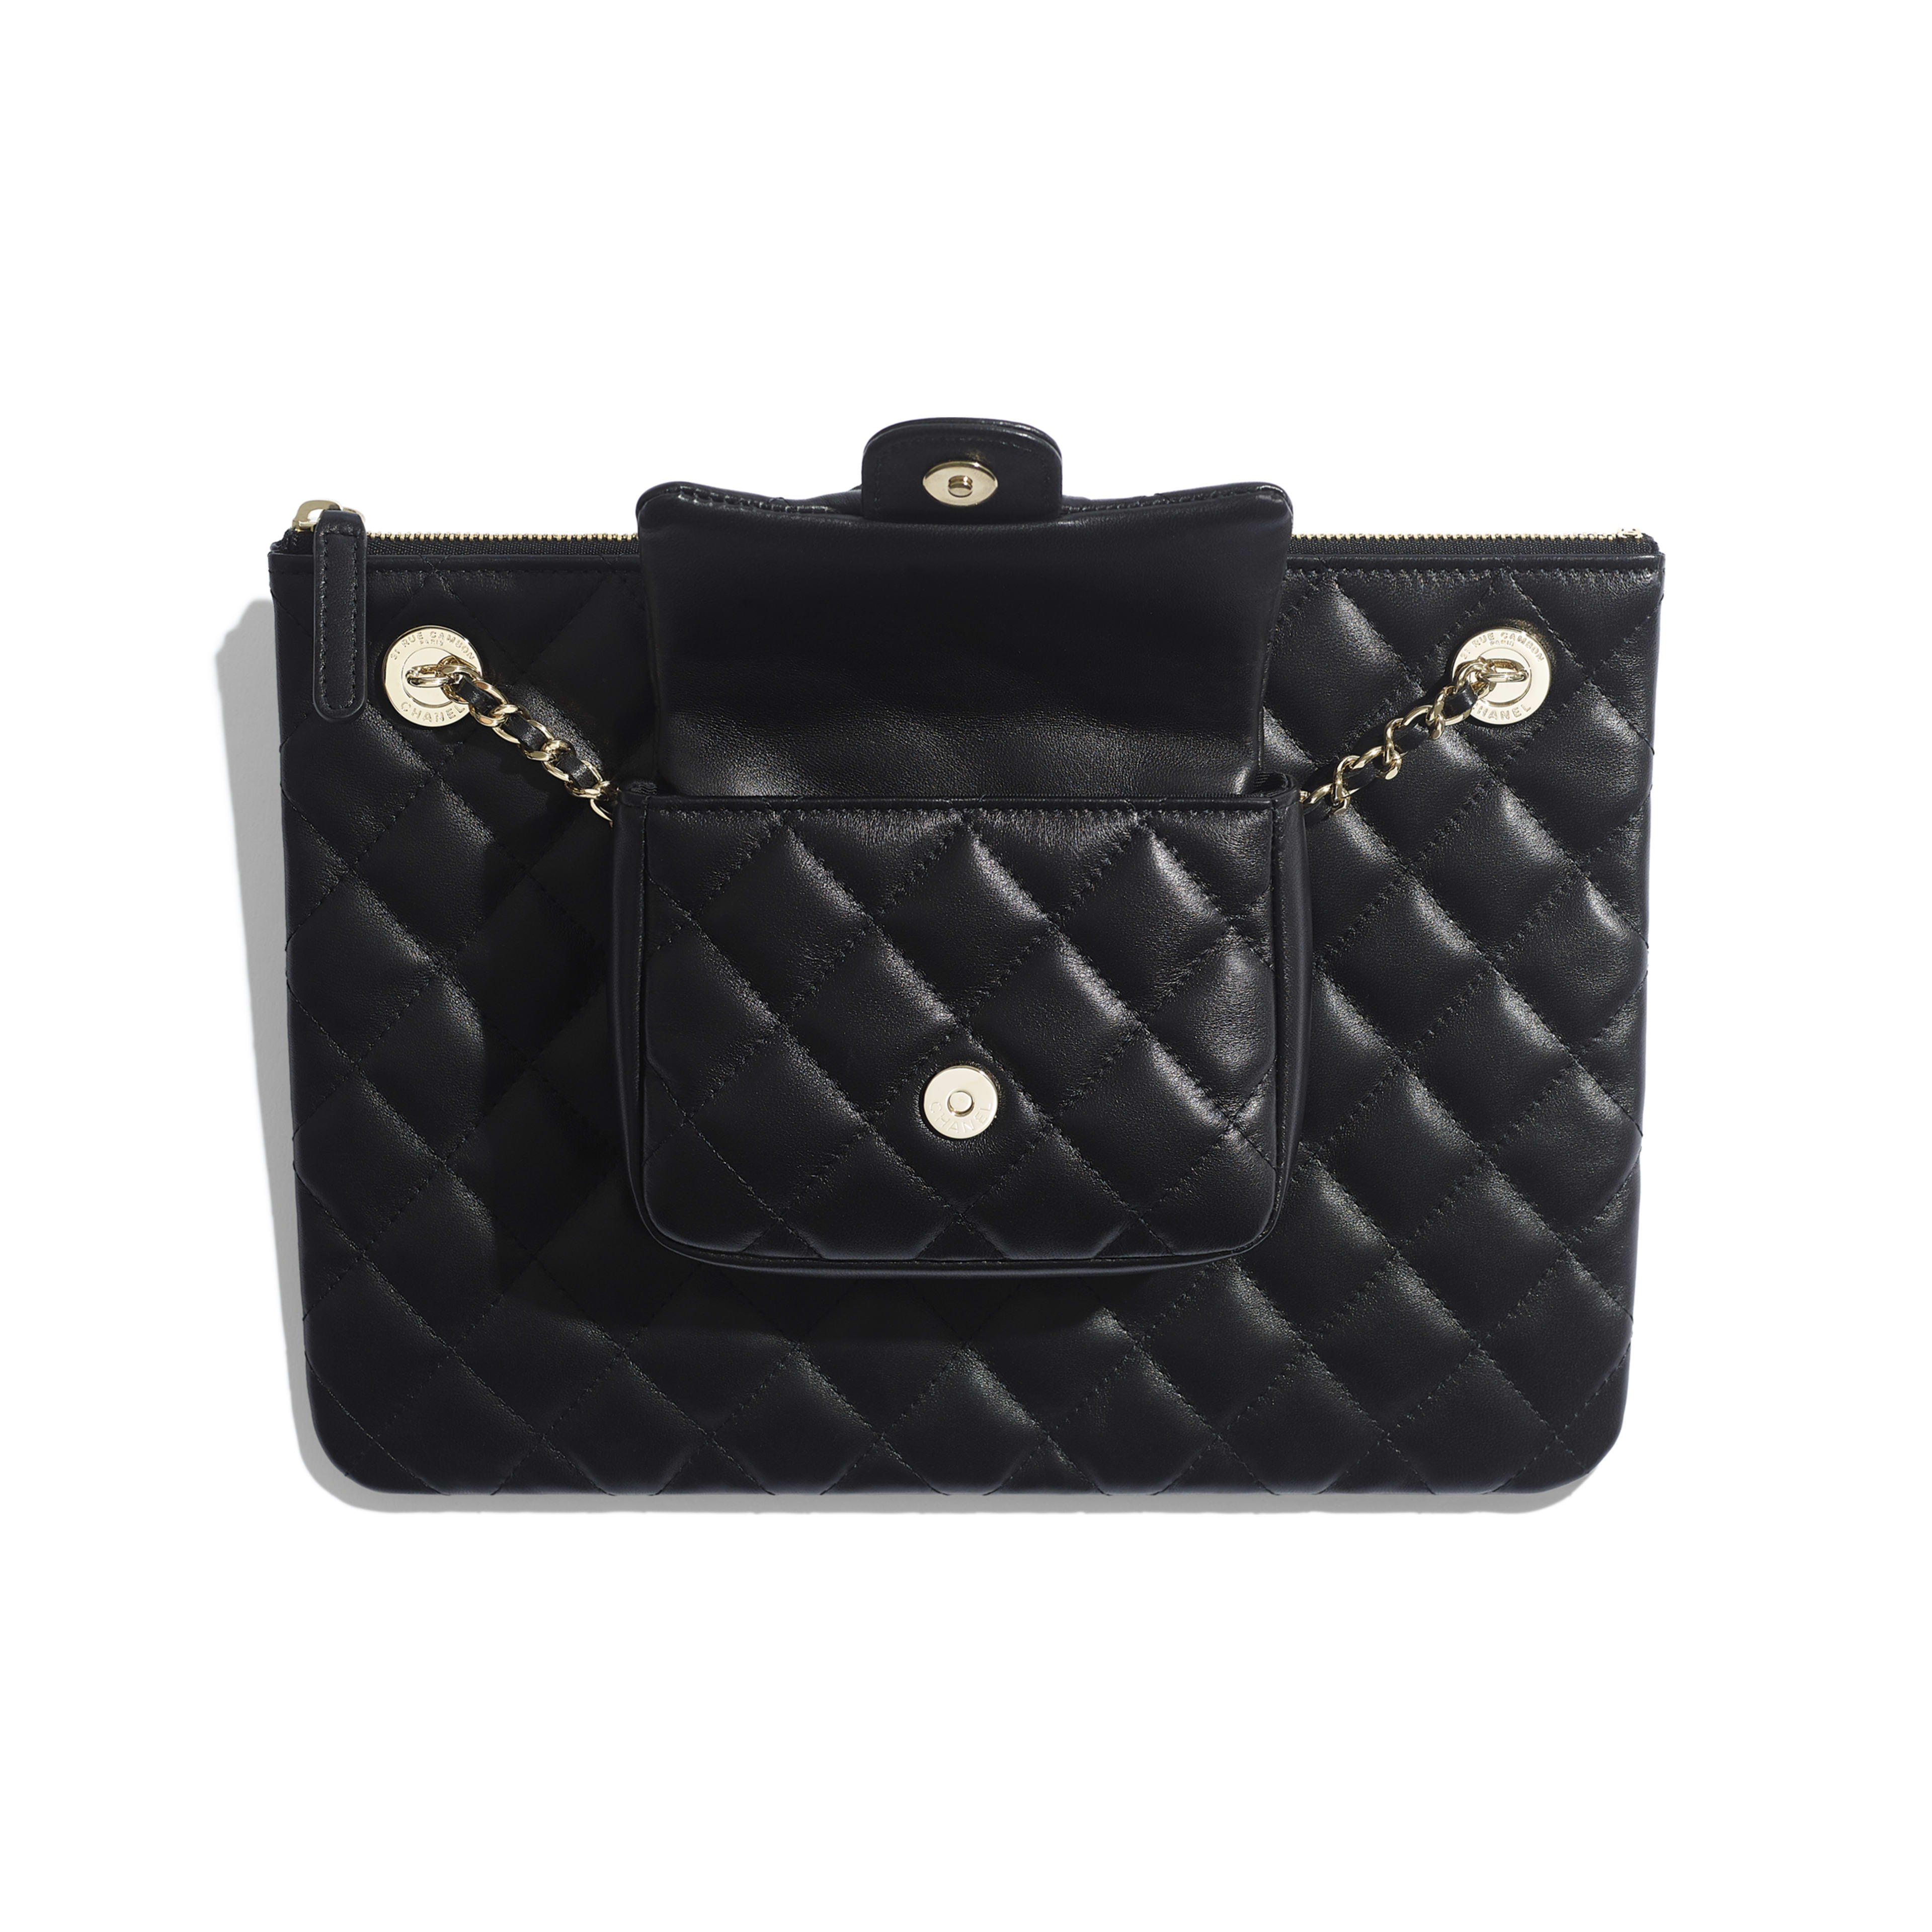 Pouch - Black - Lambskin - Other view - see full sized version